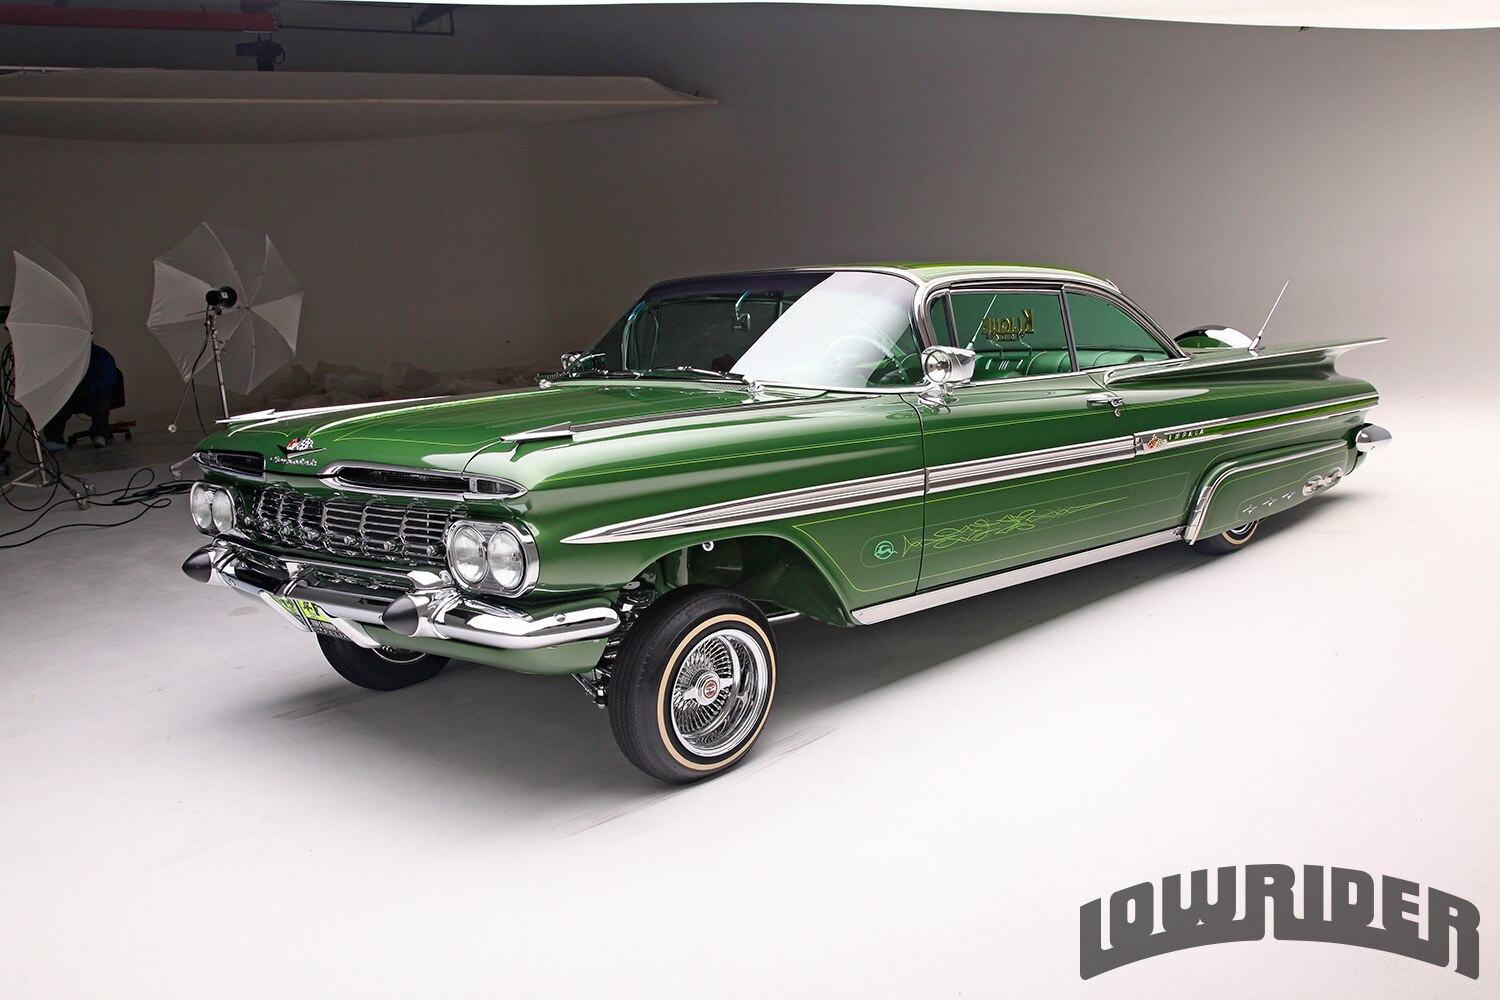 1959-chevrolet-impala-front-left-side-view1